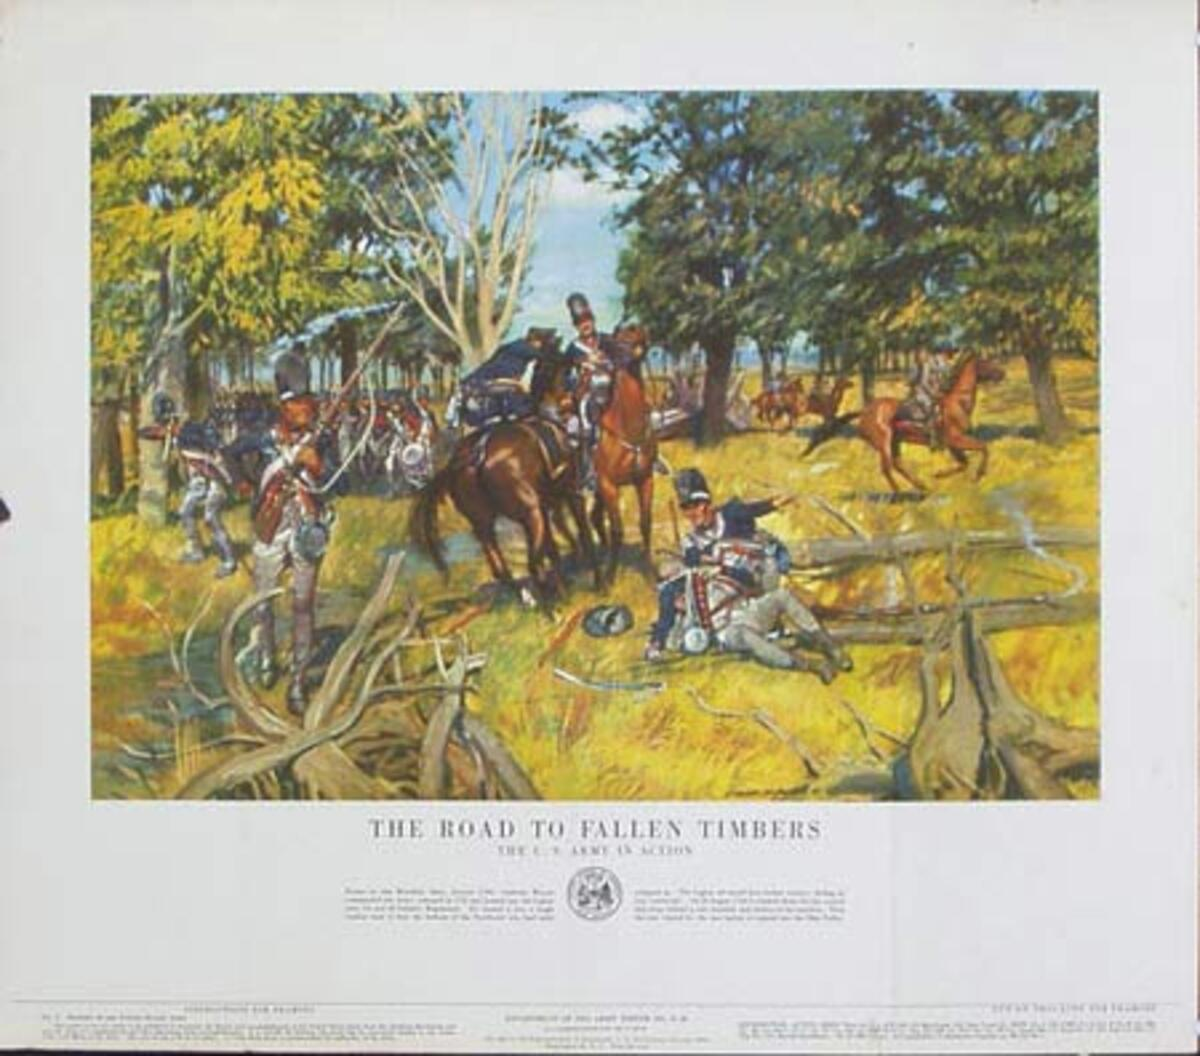 The Road to Fallen Timbers U.S. Army in Action Original Vintage Army Propaganda Poster